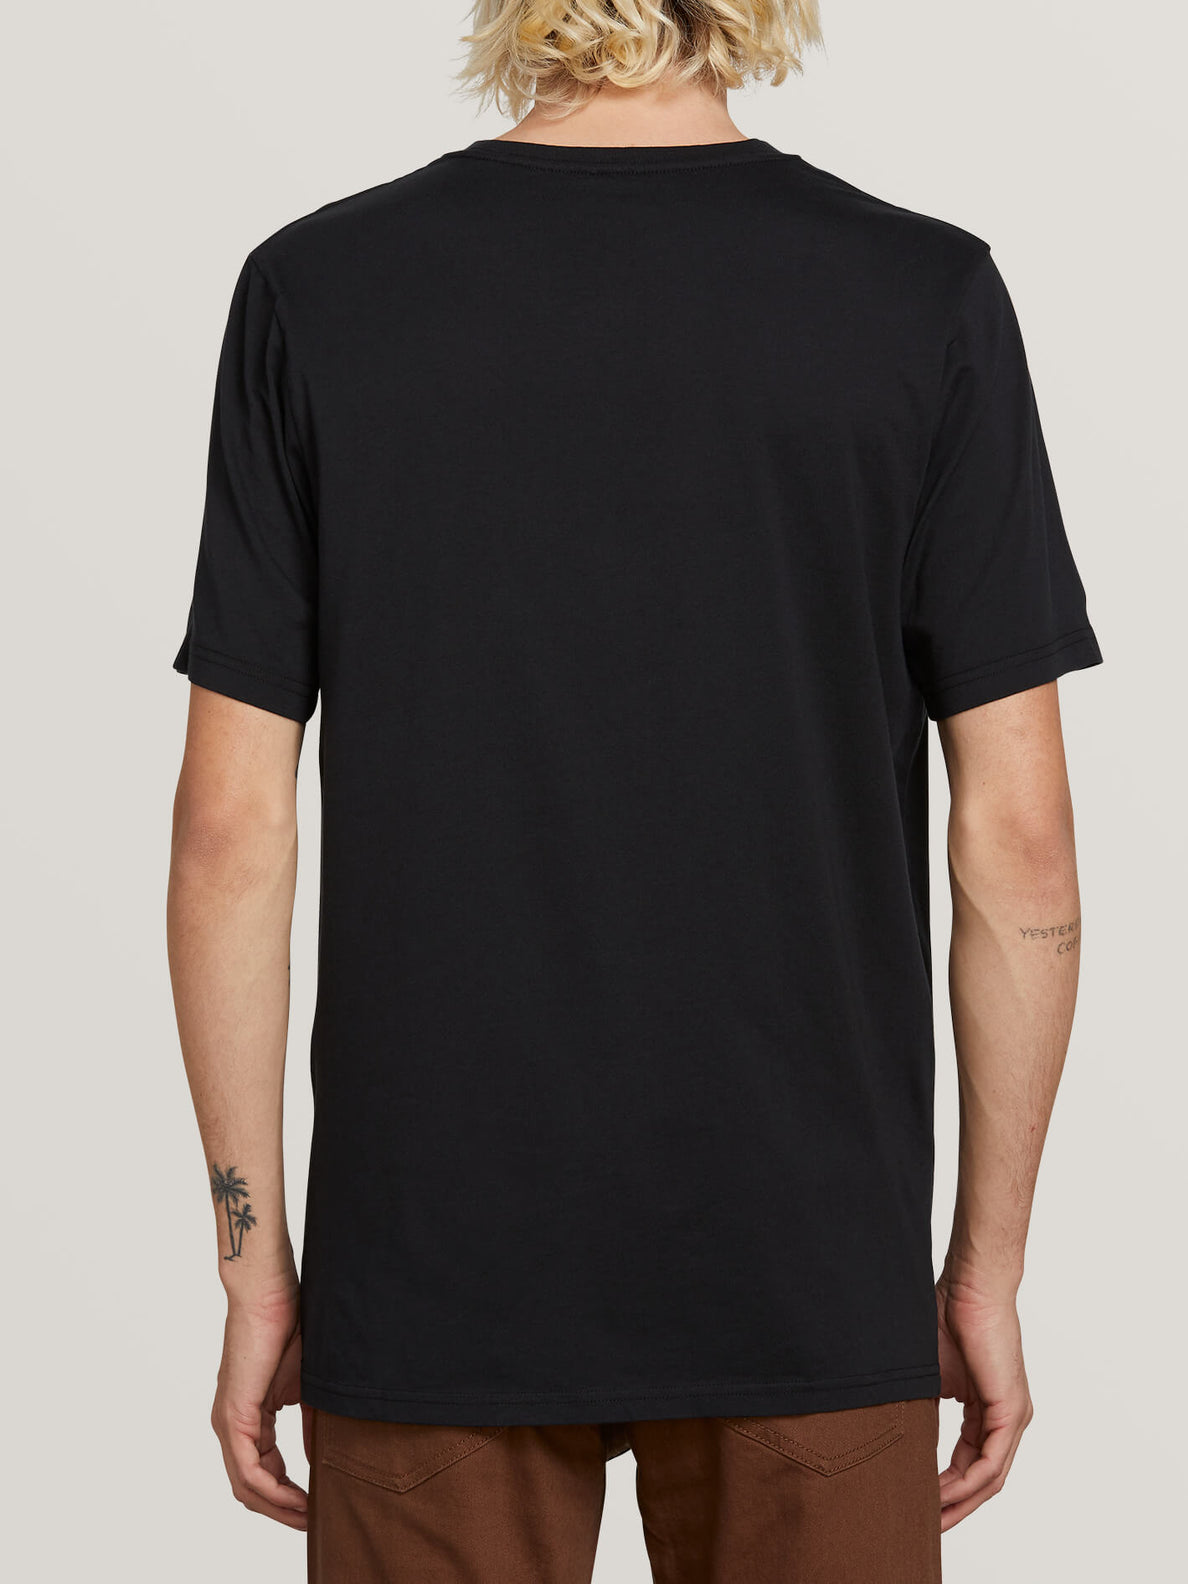 Stone Sounds Short Sleeve Tee In Black, Back View